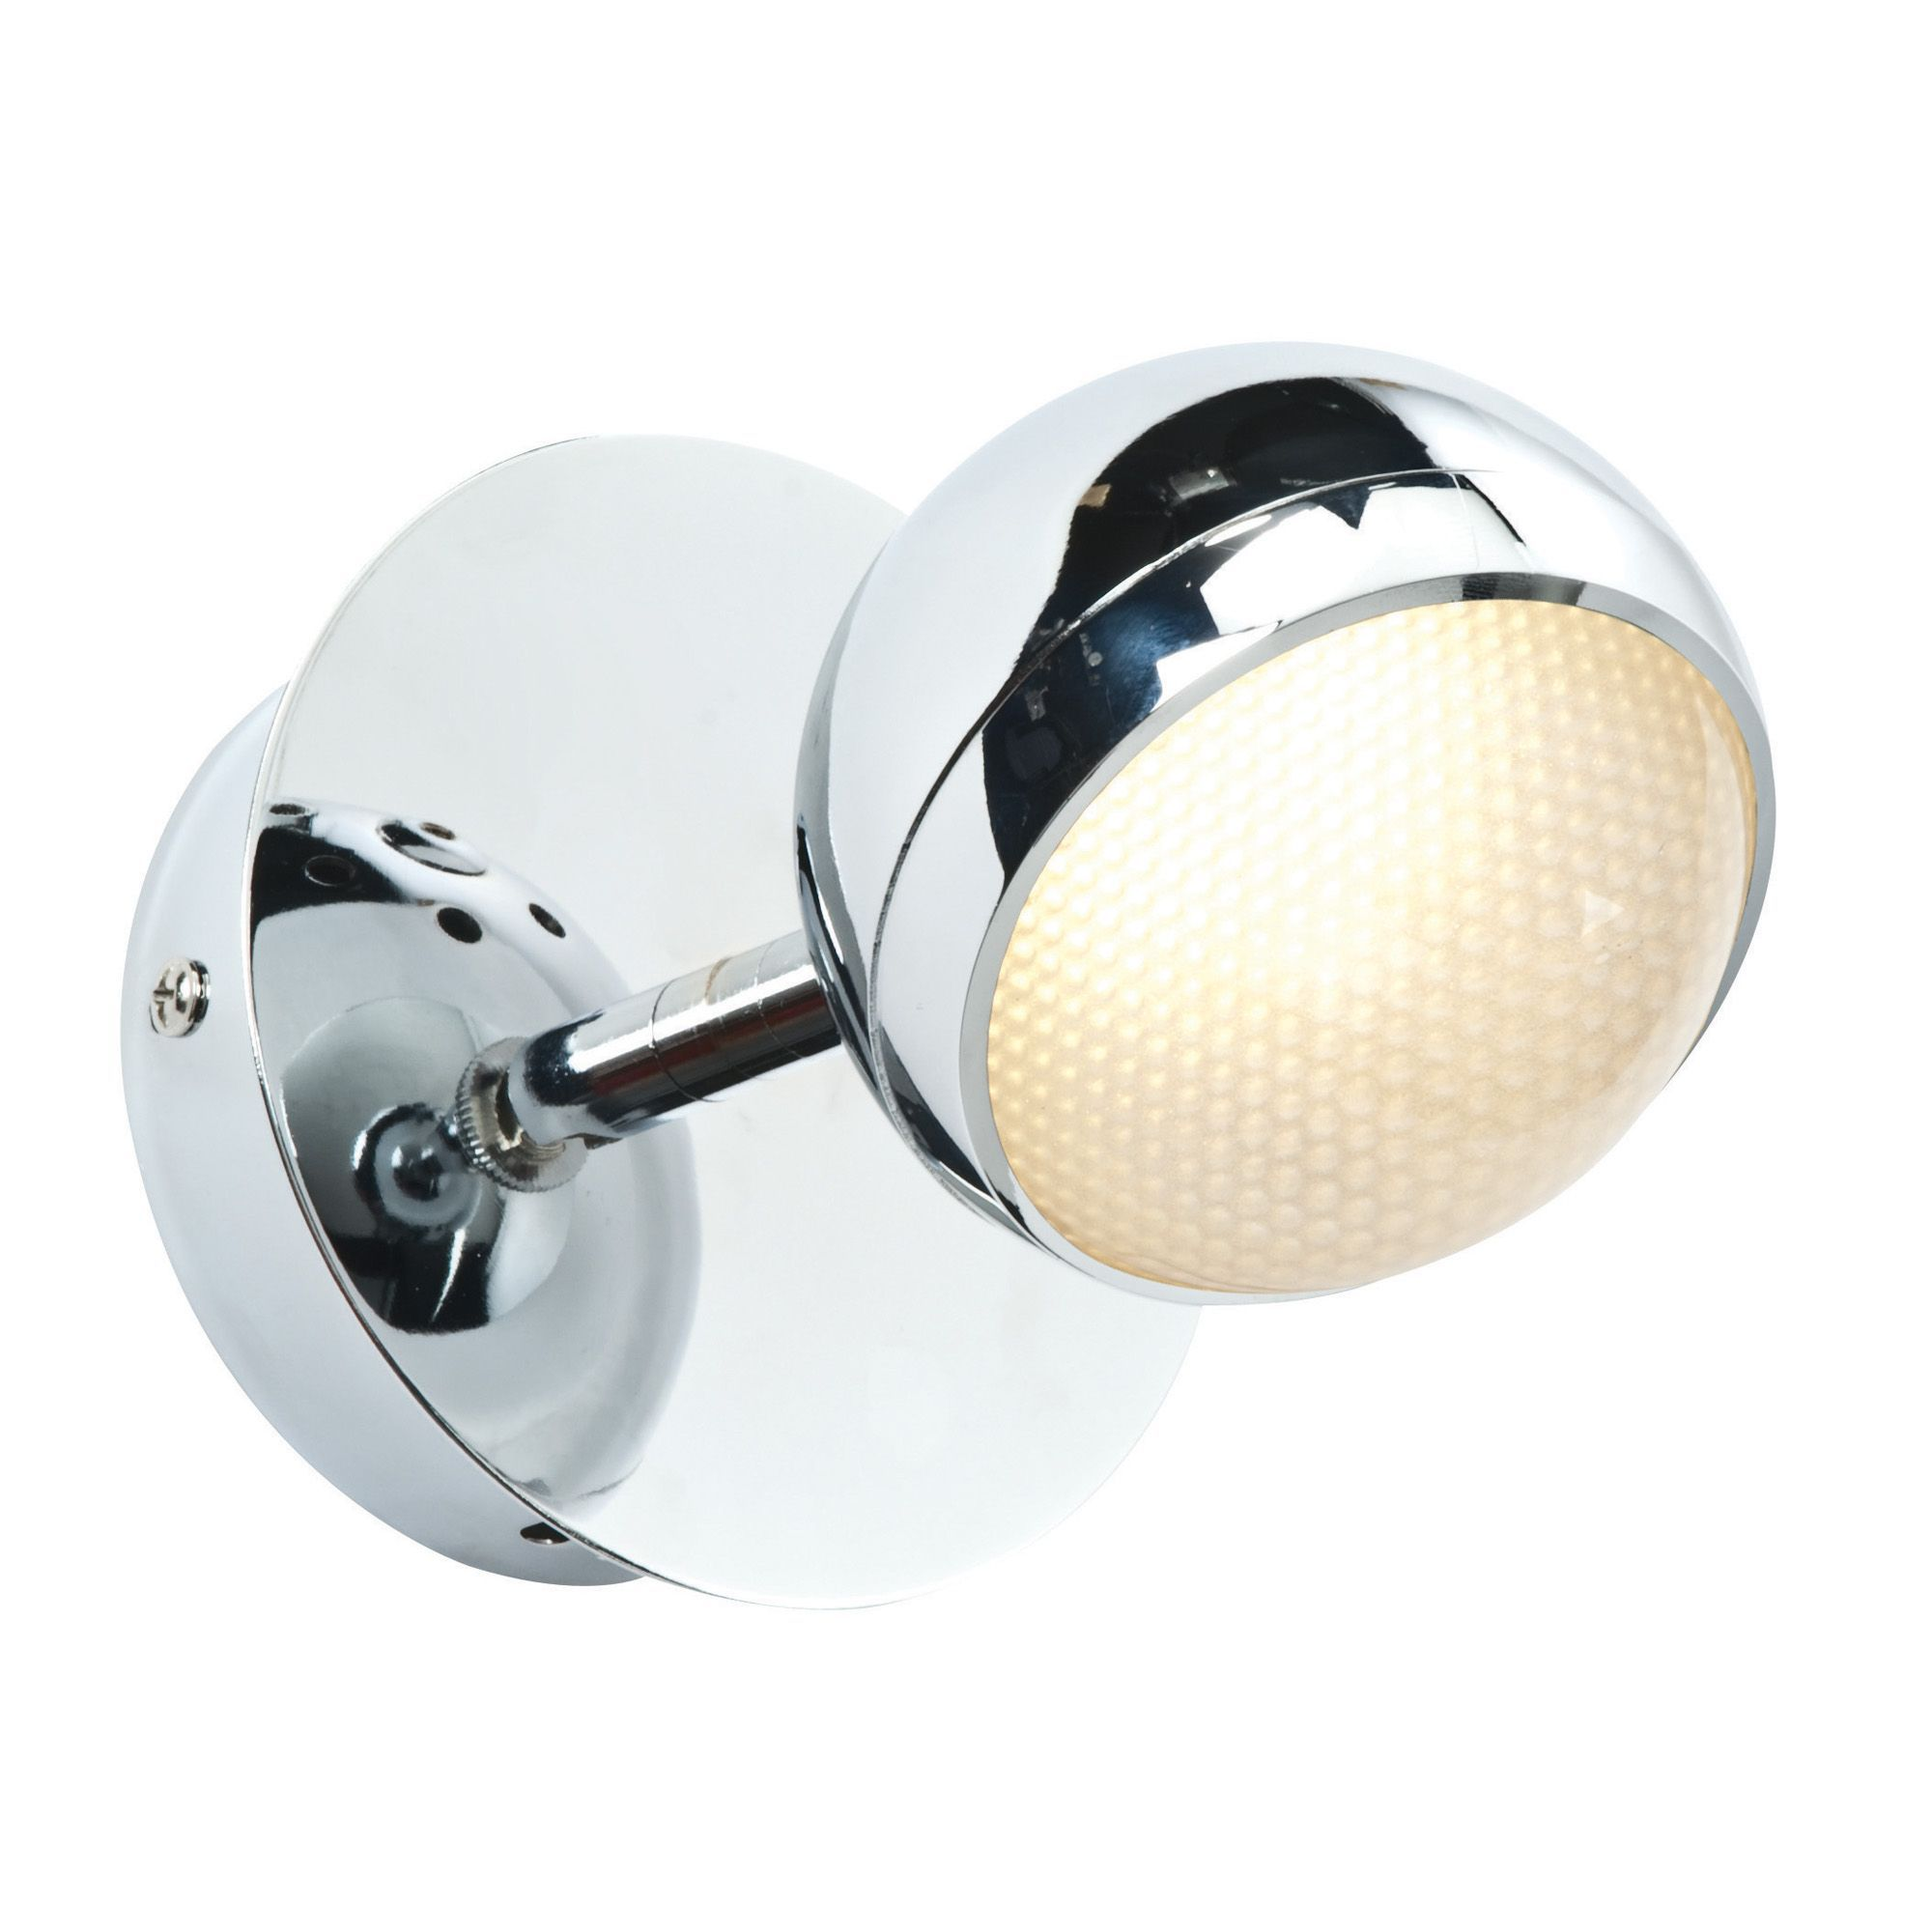 Chrome Effect Wall Lights : Pluto Chrome Effect Wall Light Departments TradePoint